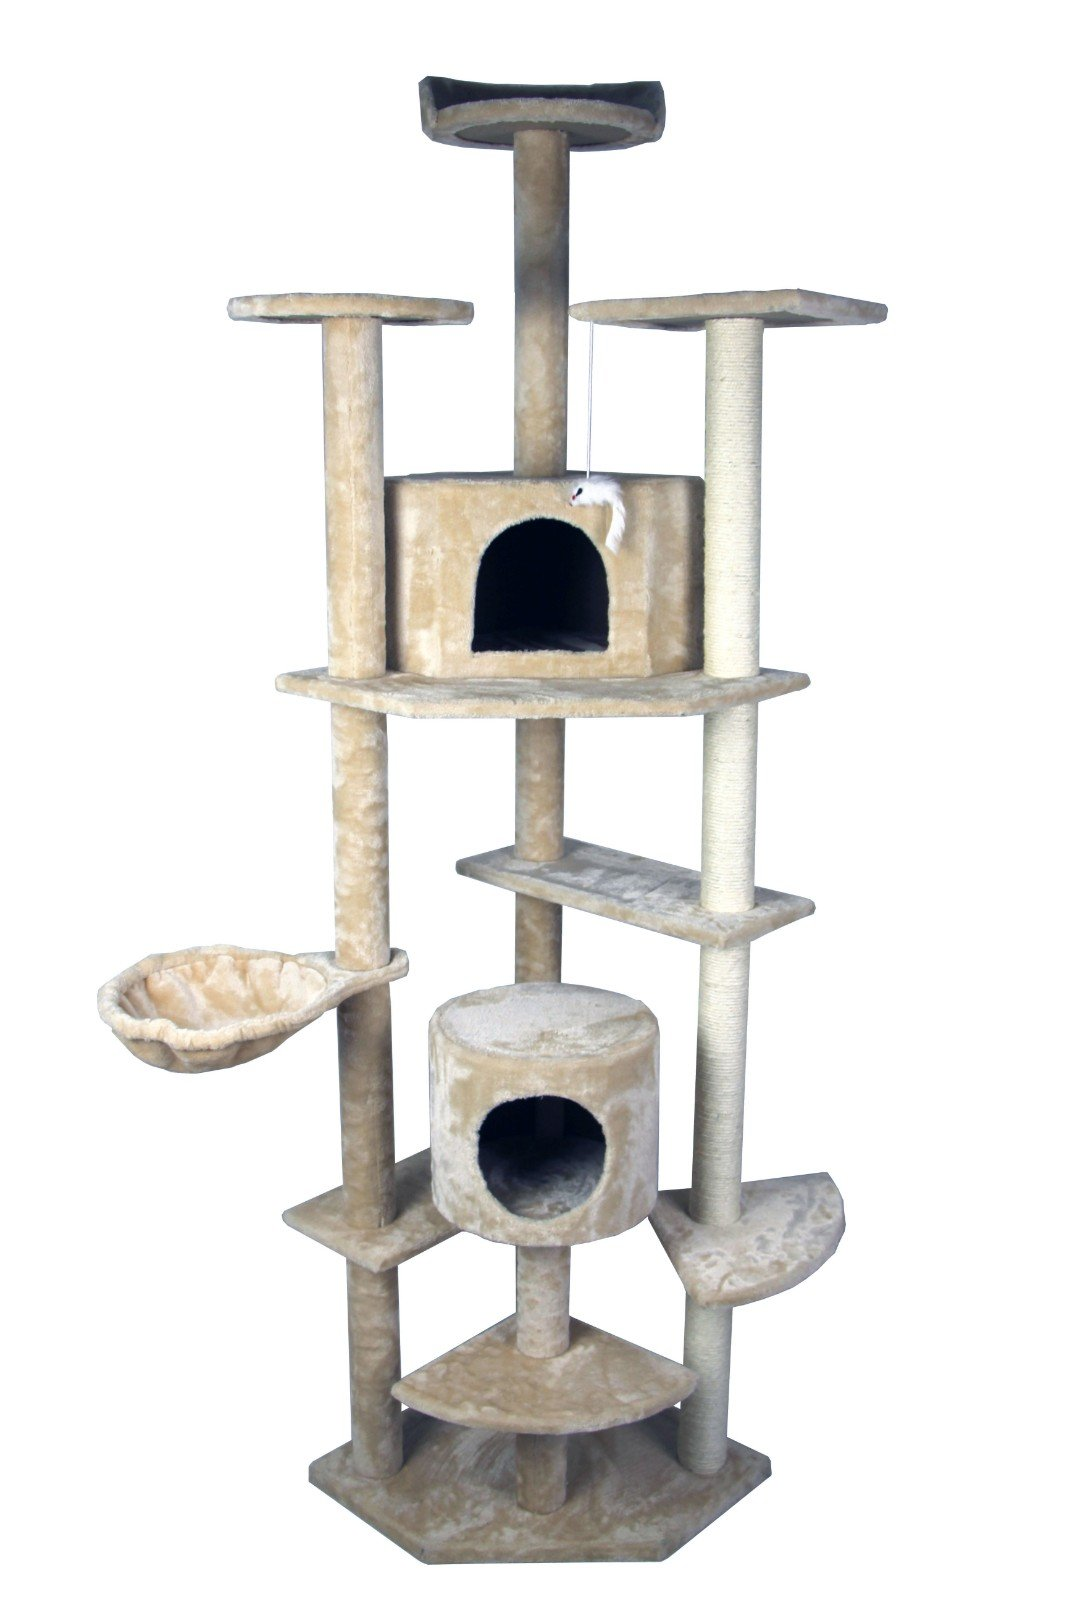 79'' HIDING CAT TREE Tower Condo Furniture Scratch Post Kitty Pet House Play Furniture Sisal Pole and Stairs (Beige) by HIDING